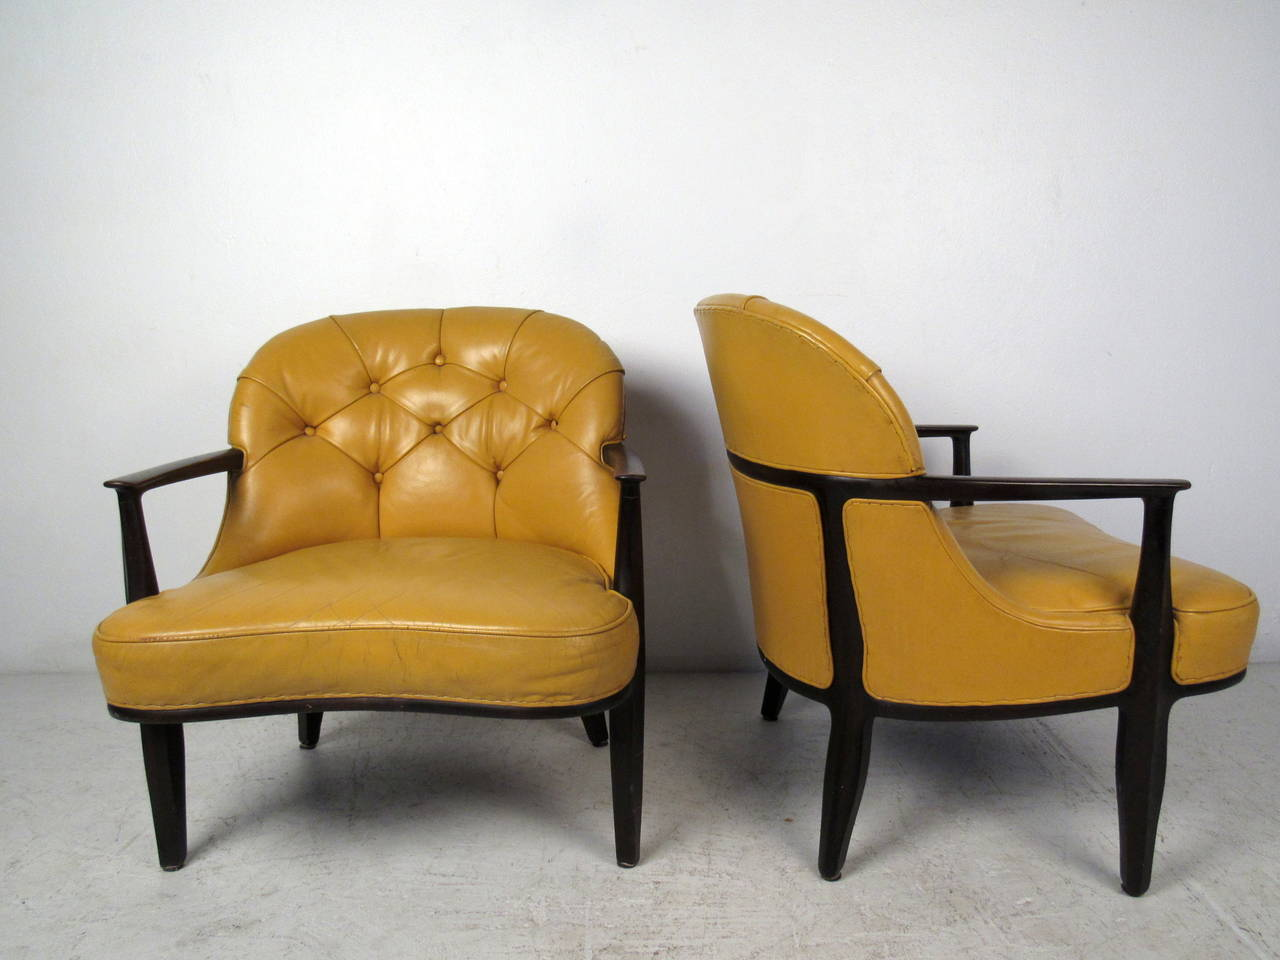 tufted yellow chair red leather bean bag pair of chairs by dunbar for sale at 1stdibs